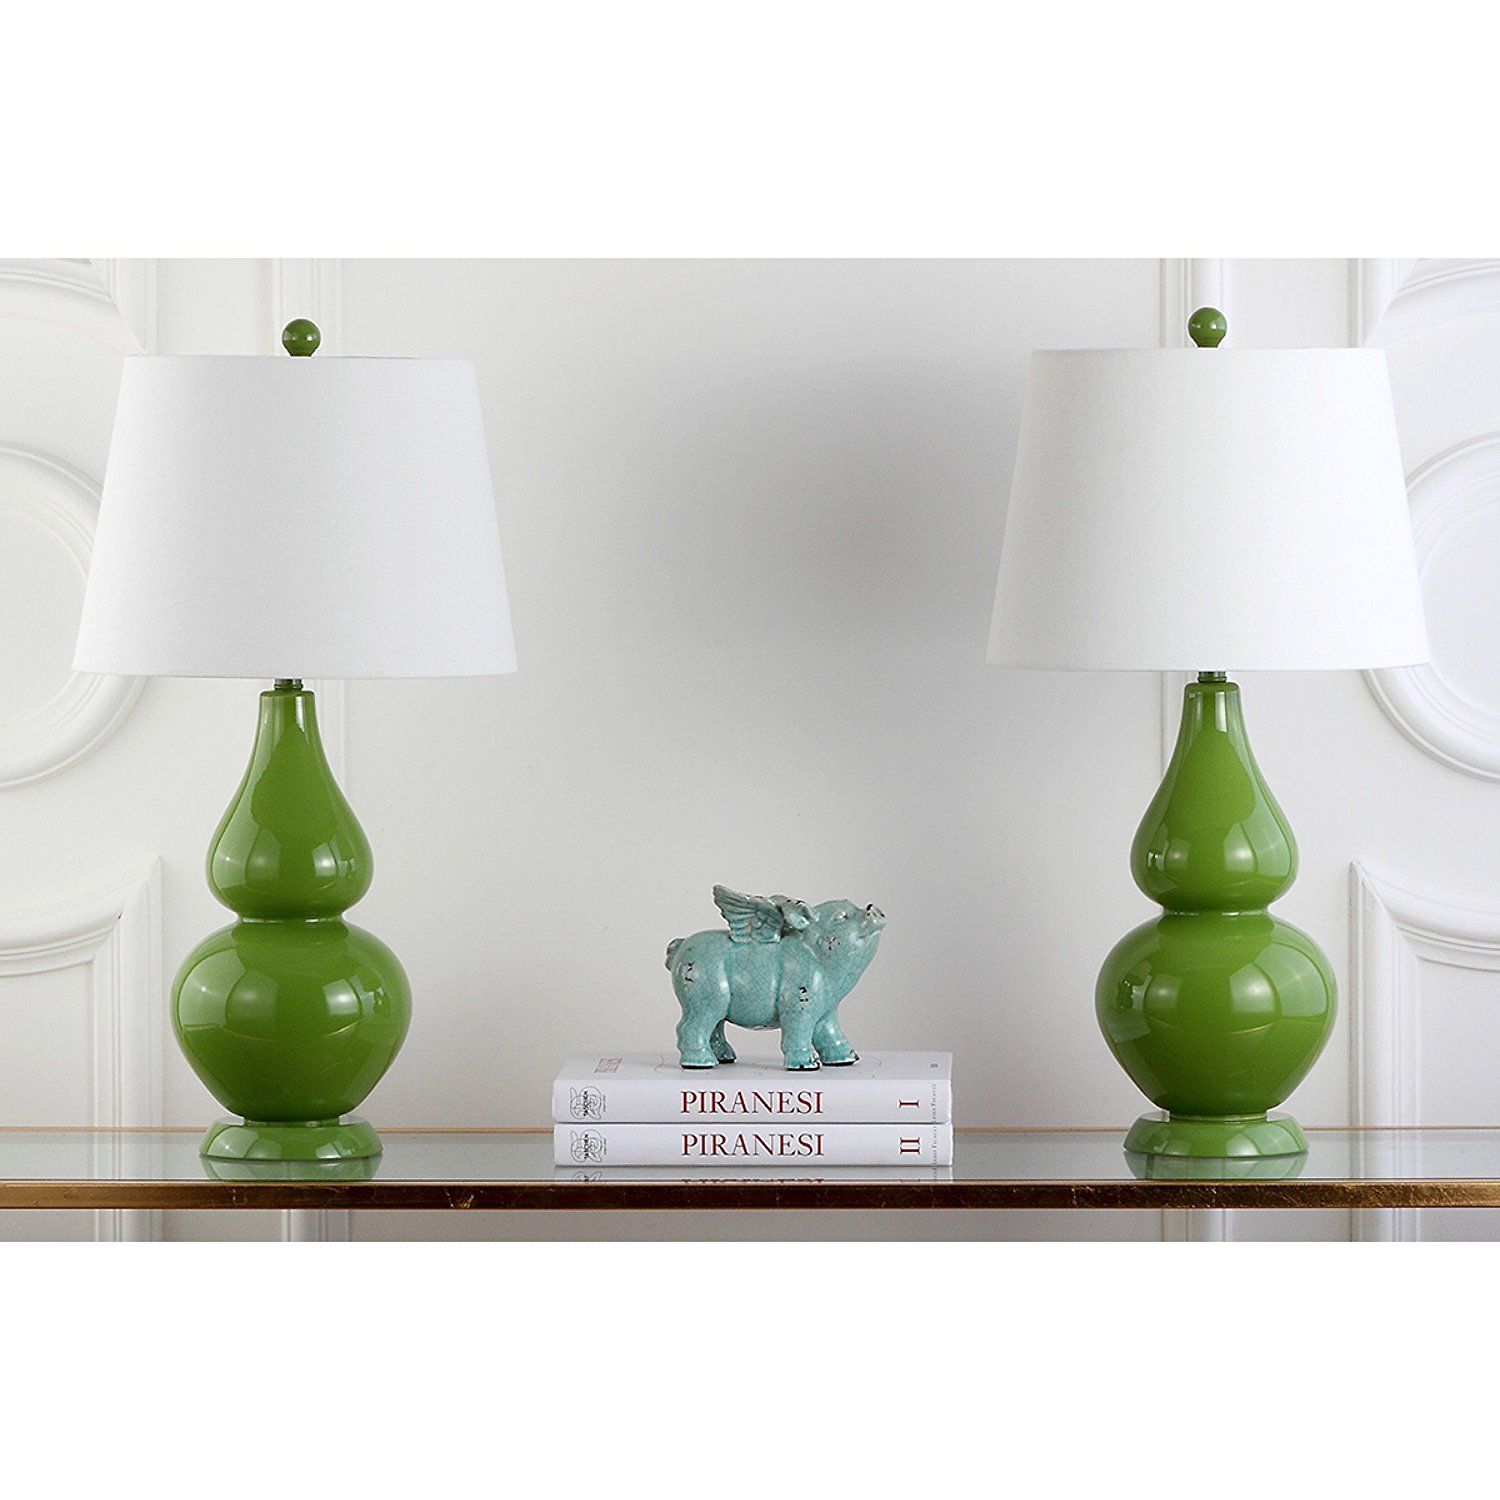 Safavieh Lighting Collection Cybil Double Gourd Table Lamp, Fern Green, Set of 2